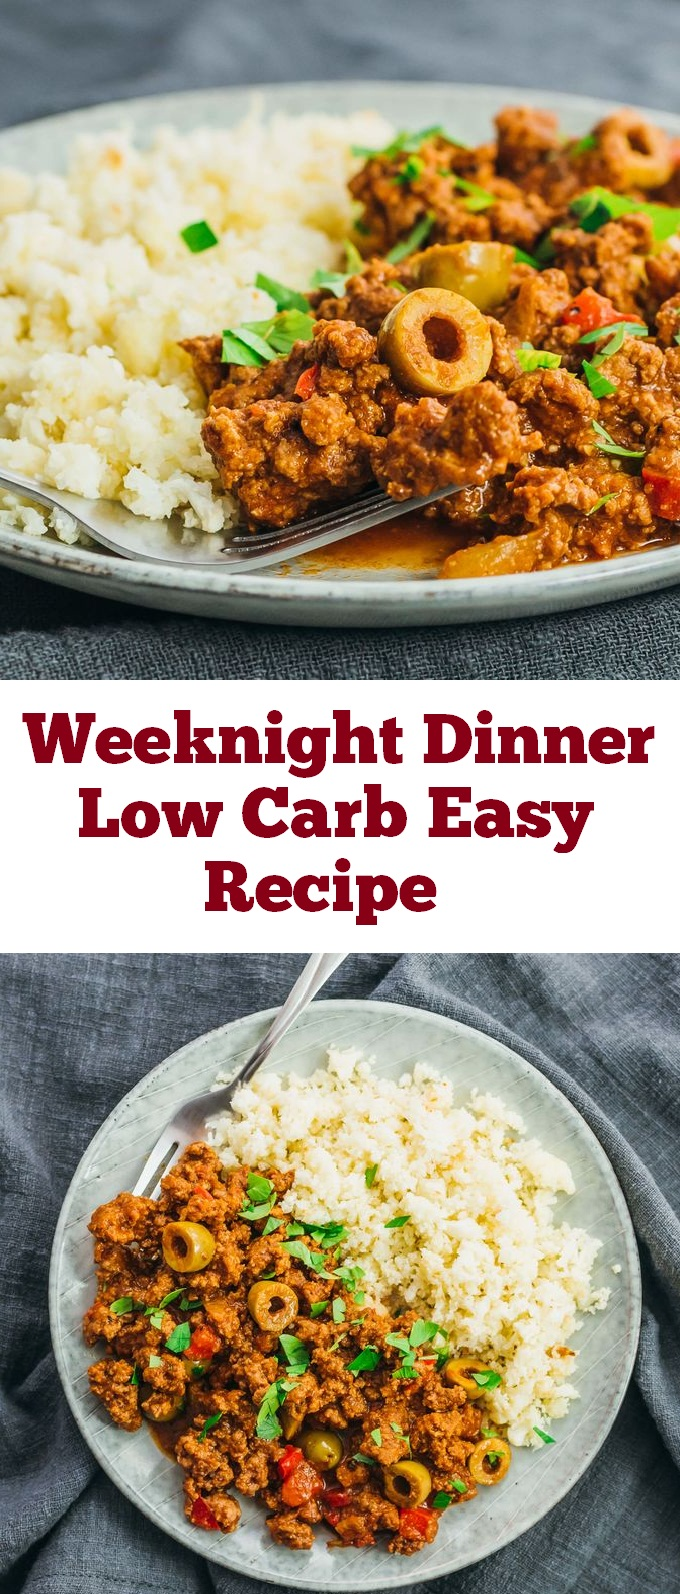 This Picadillo - Keto and Low Carb recipe is loaded with Amazing flavor and is a Paleo, Whole30, gluten-free, dairy-free and keto recipe to make for an easy weeknight dinner. From start to finish, you can have this low carb and healthy family dinner recipe ready in under an hour! #lowcarb #healthydinner #glutenfree #keto #ketodinner #ketogenic #lowcarbdinner #dinner #weeknightdinner #weeknight #dairyfree #paleo